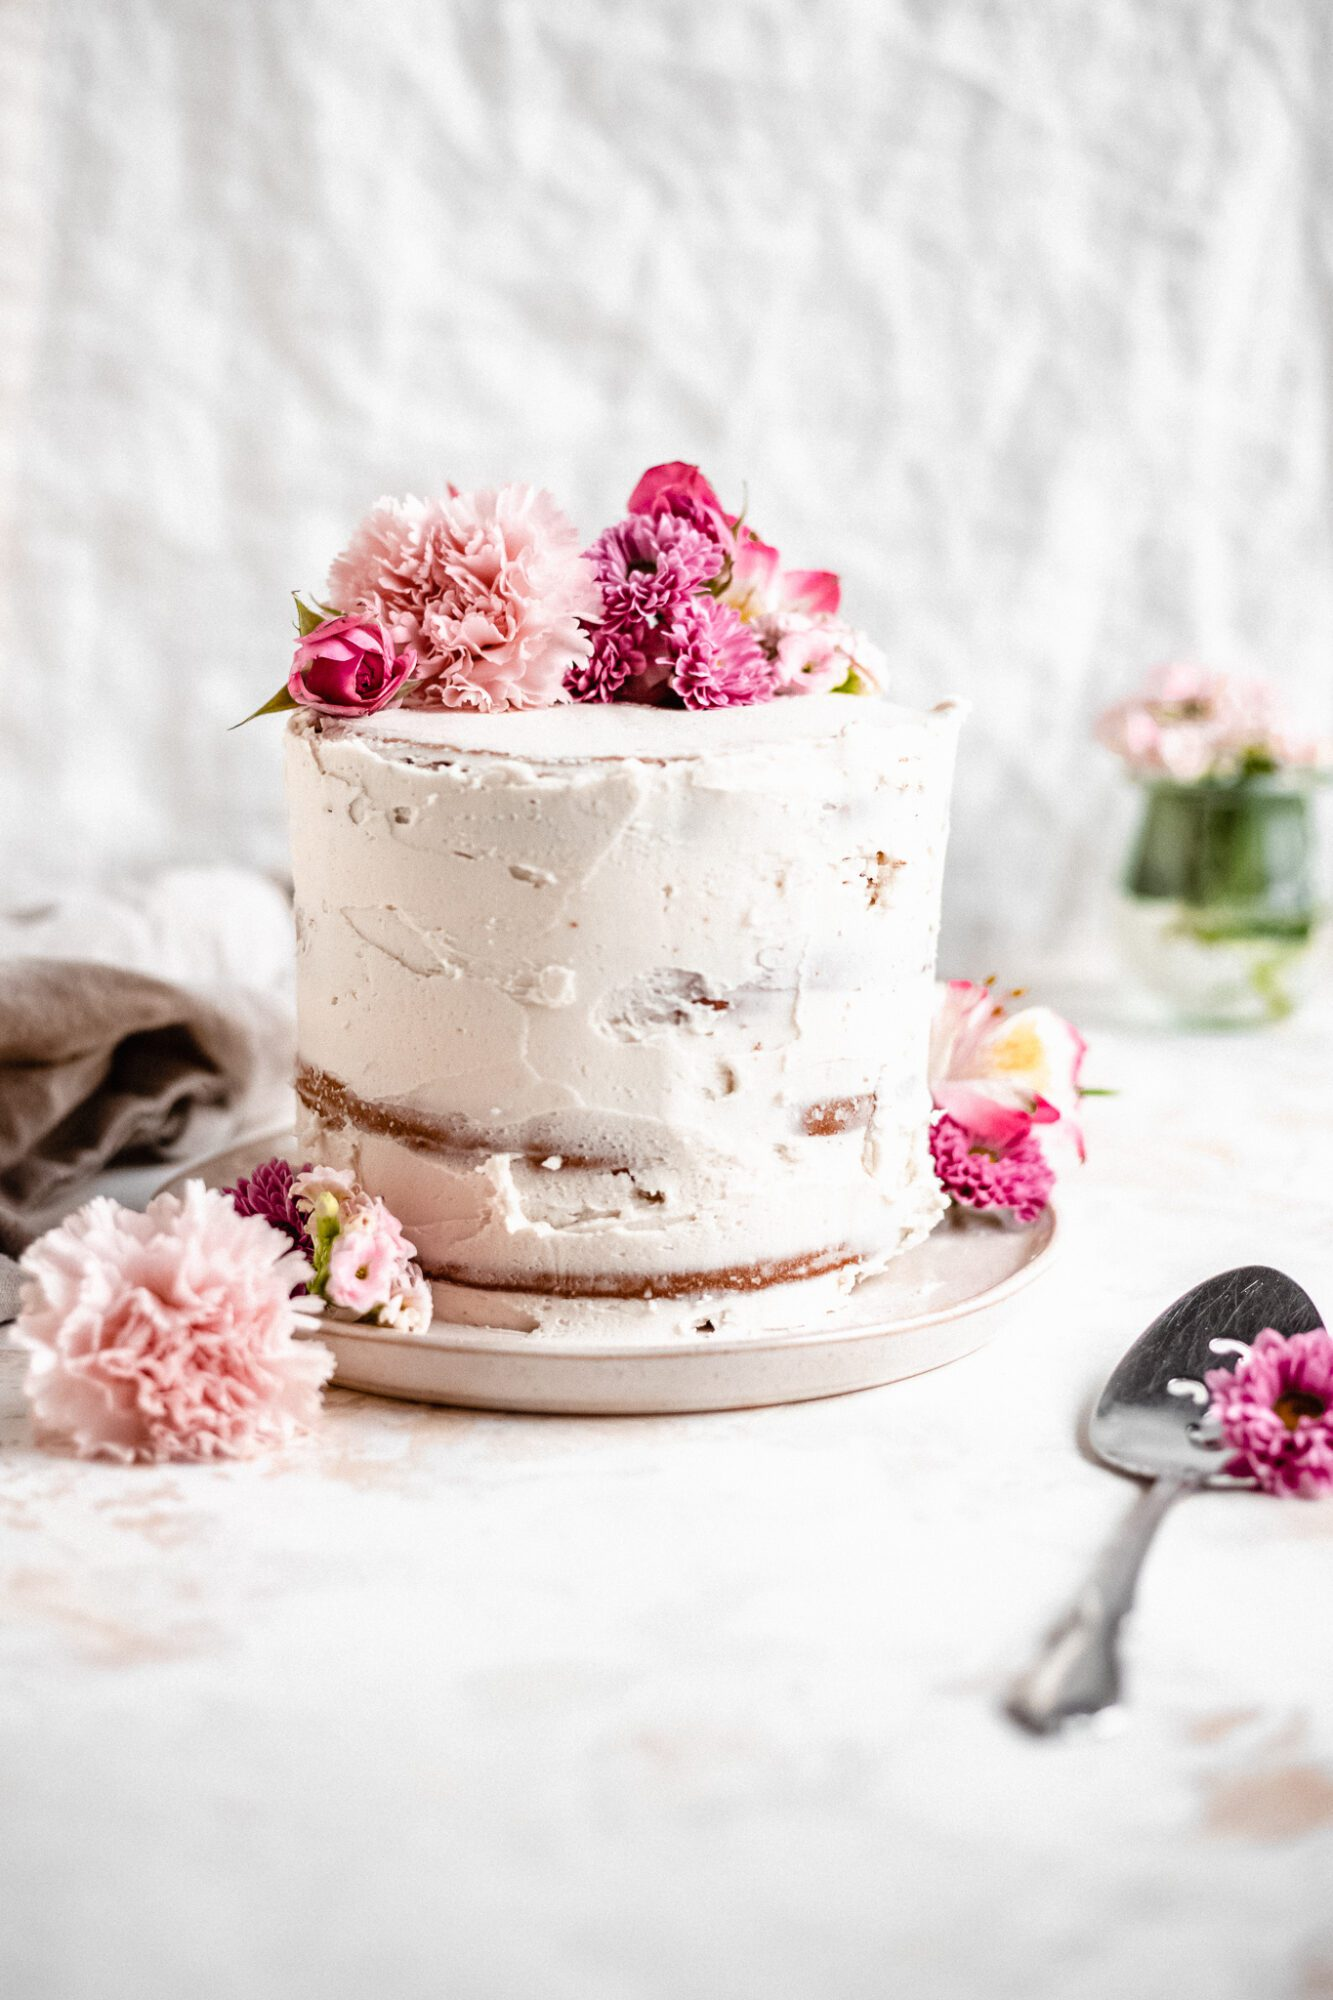 vegan cake with flowers